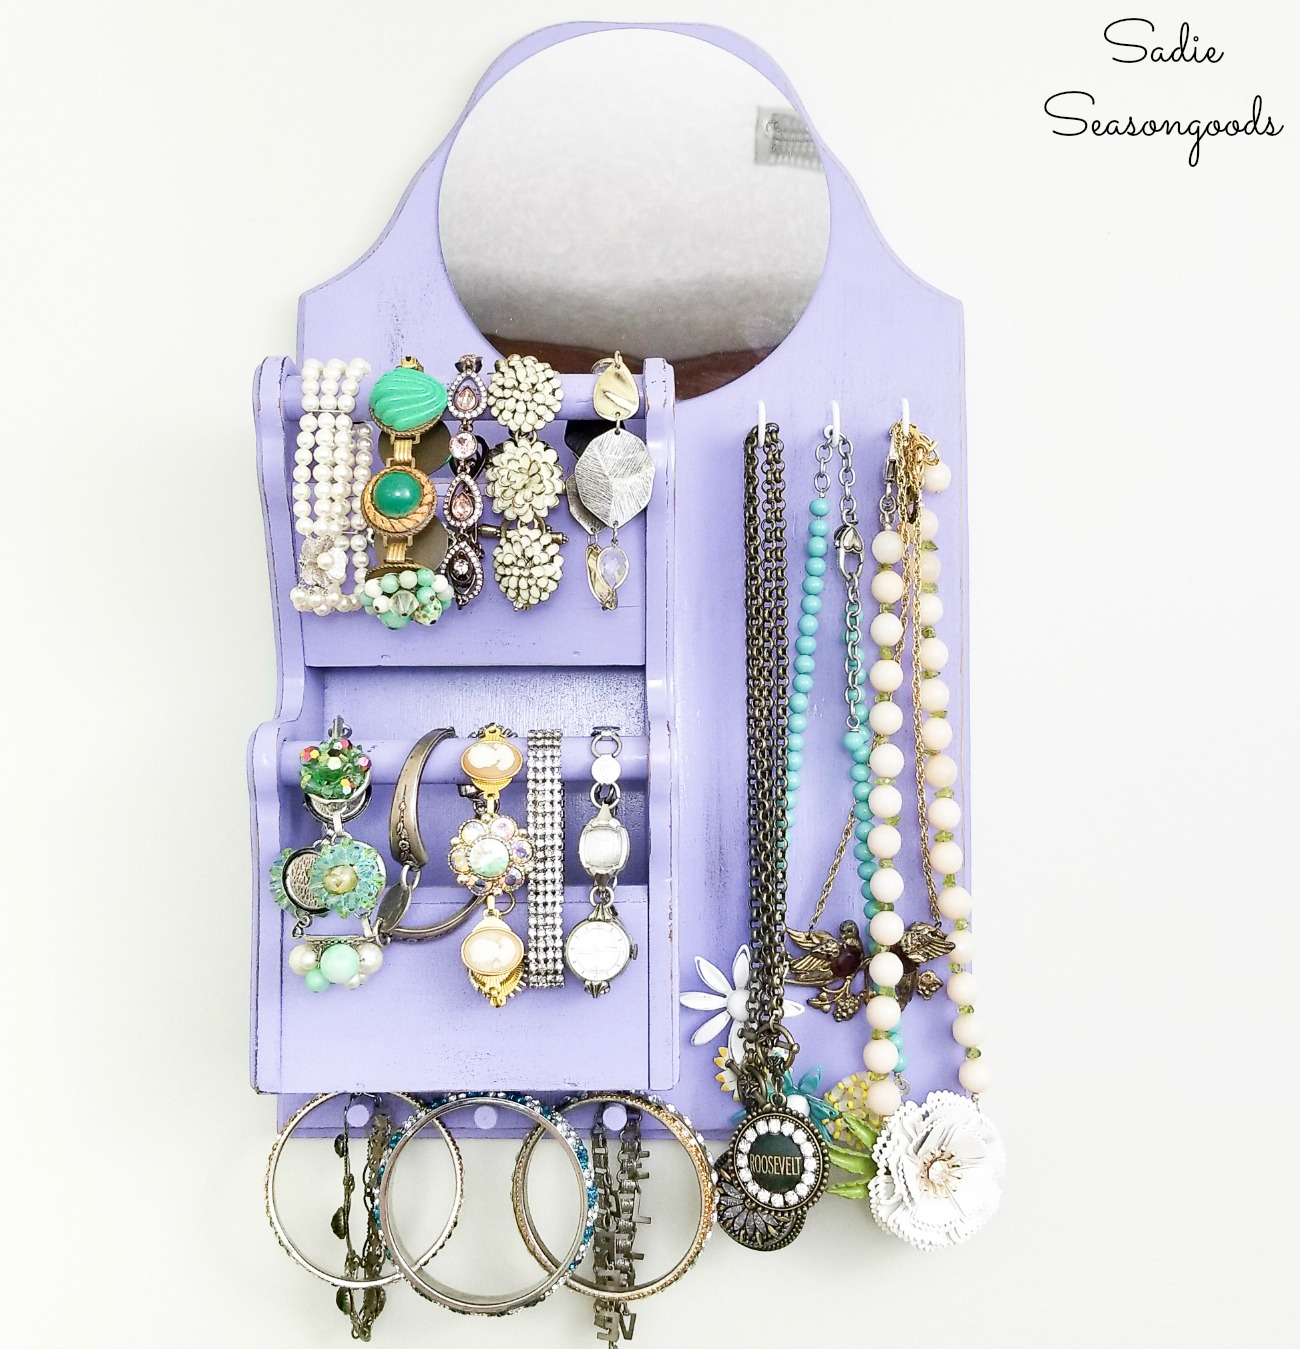 Apartment Storage Ideas with a DIY Jewelry Hanger